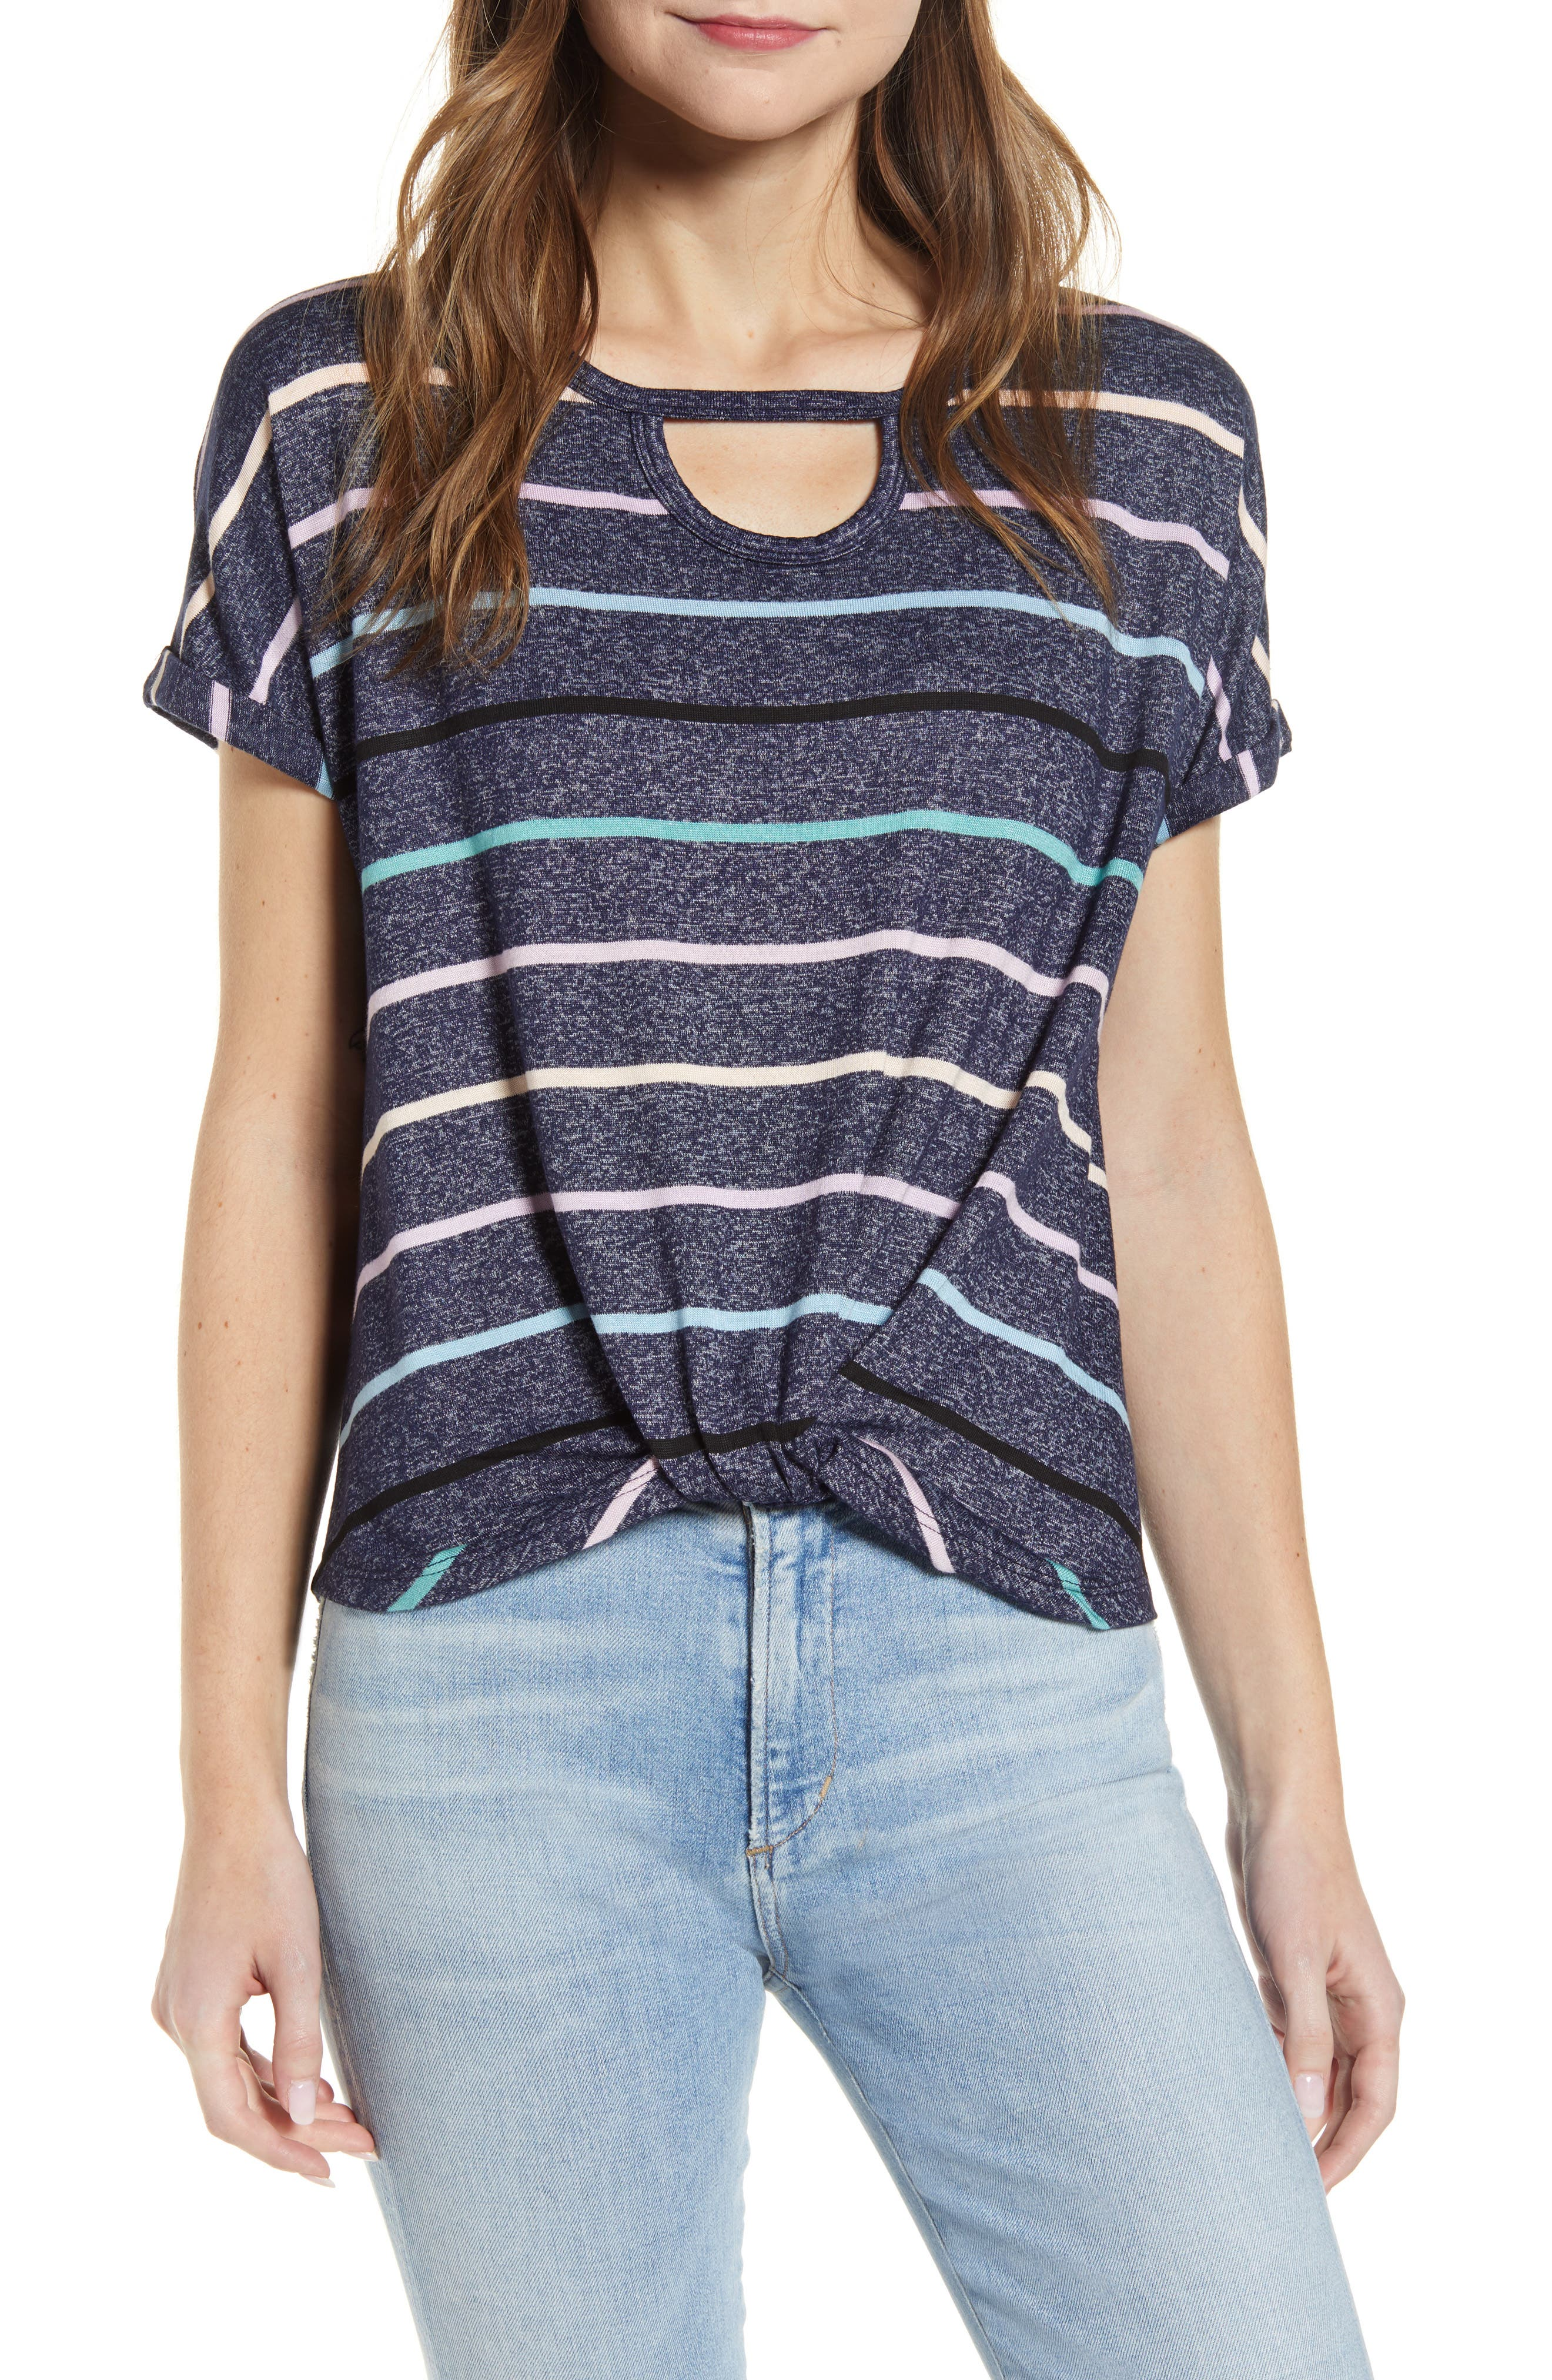 A soft knit top is updated with an airy cutout neckline, pastel stripes and a flattering twisted hem. Style Name: Wit & Wisdom Cutout Scoop Neck Twist T-Shirt (Nordstrom Exclusive). Style Number: 6012651. Available in stores.